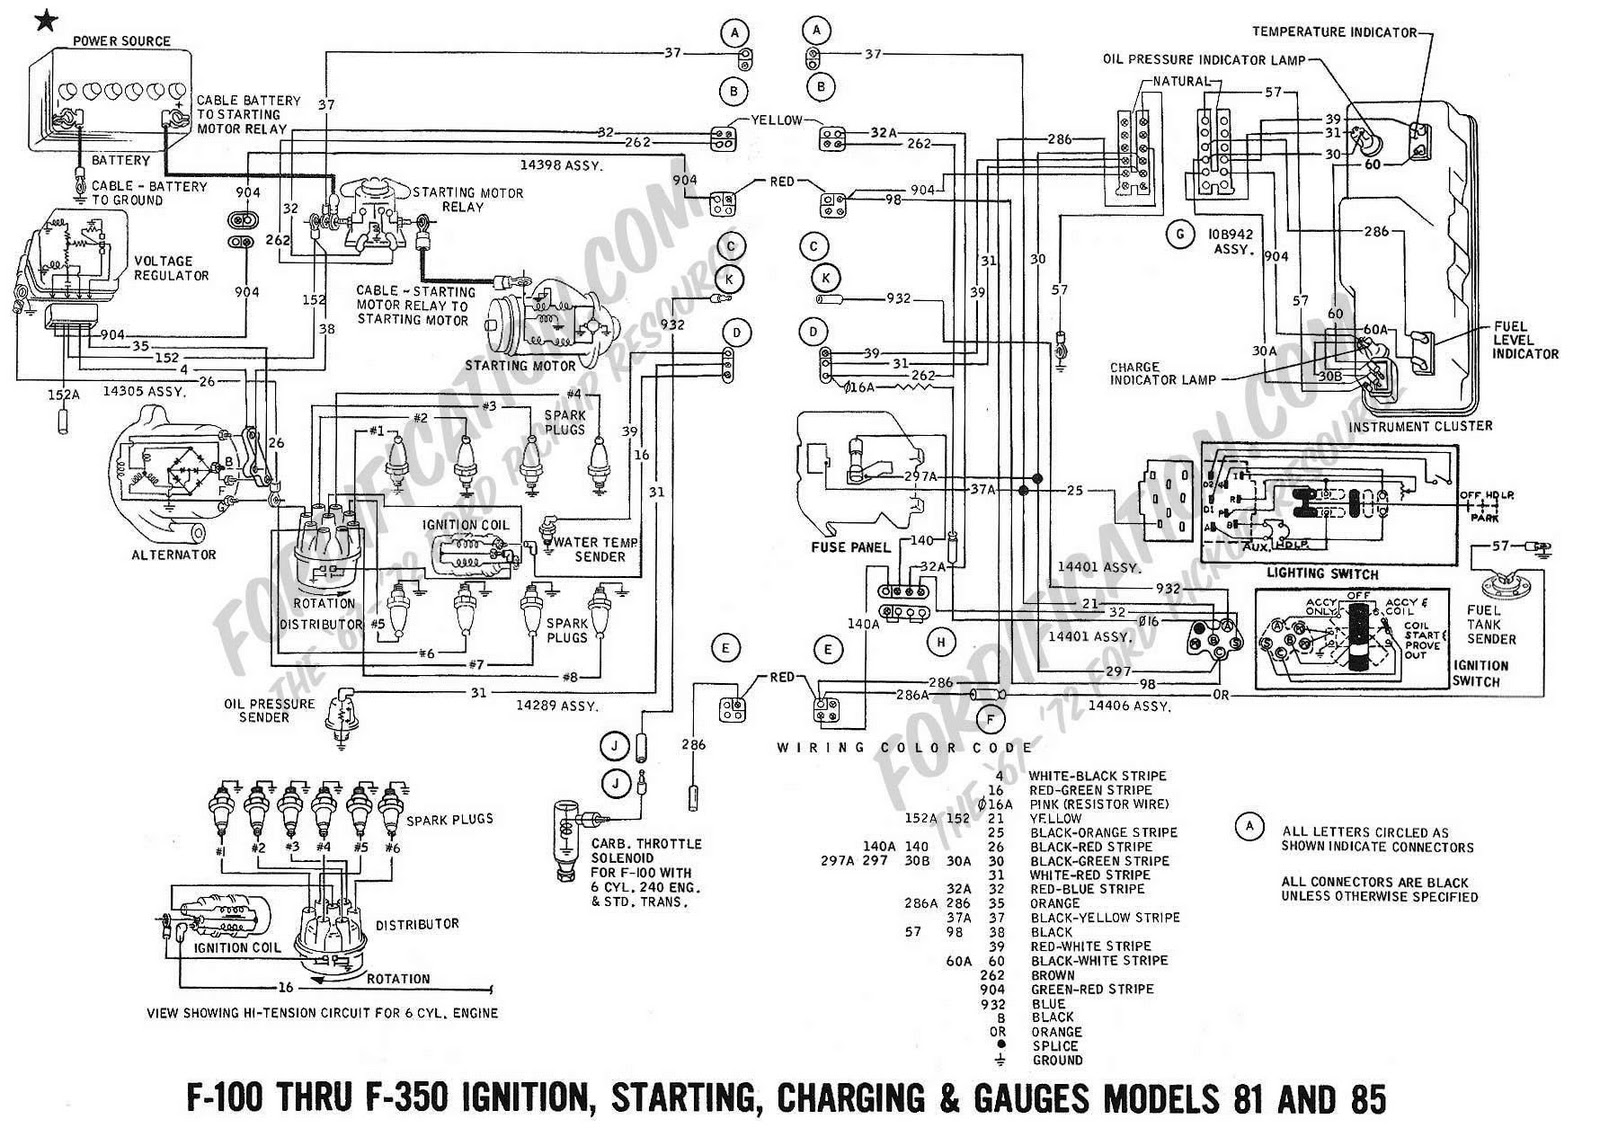 Alternator Diagram Wiring Utility Trailer Lights 1969 F100 Topdns Organisedmum De 1967 Ford F250 Jajvmb Danielaharde U2022 Rh Turn Signal